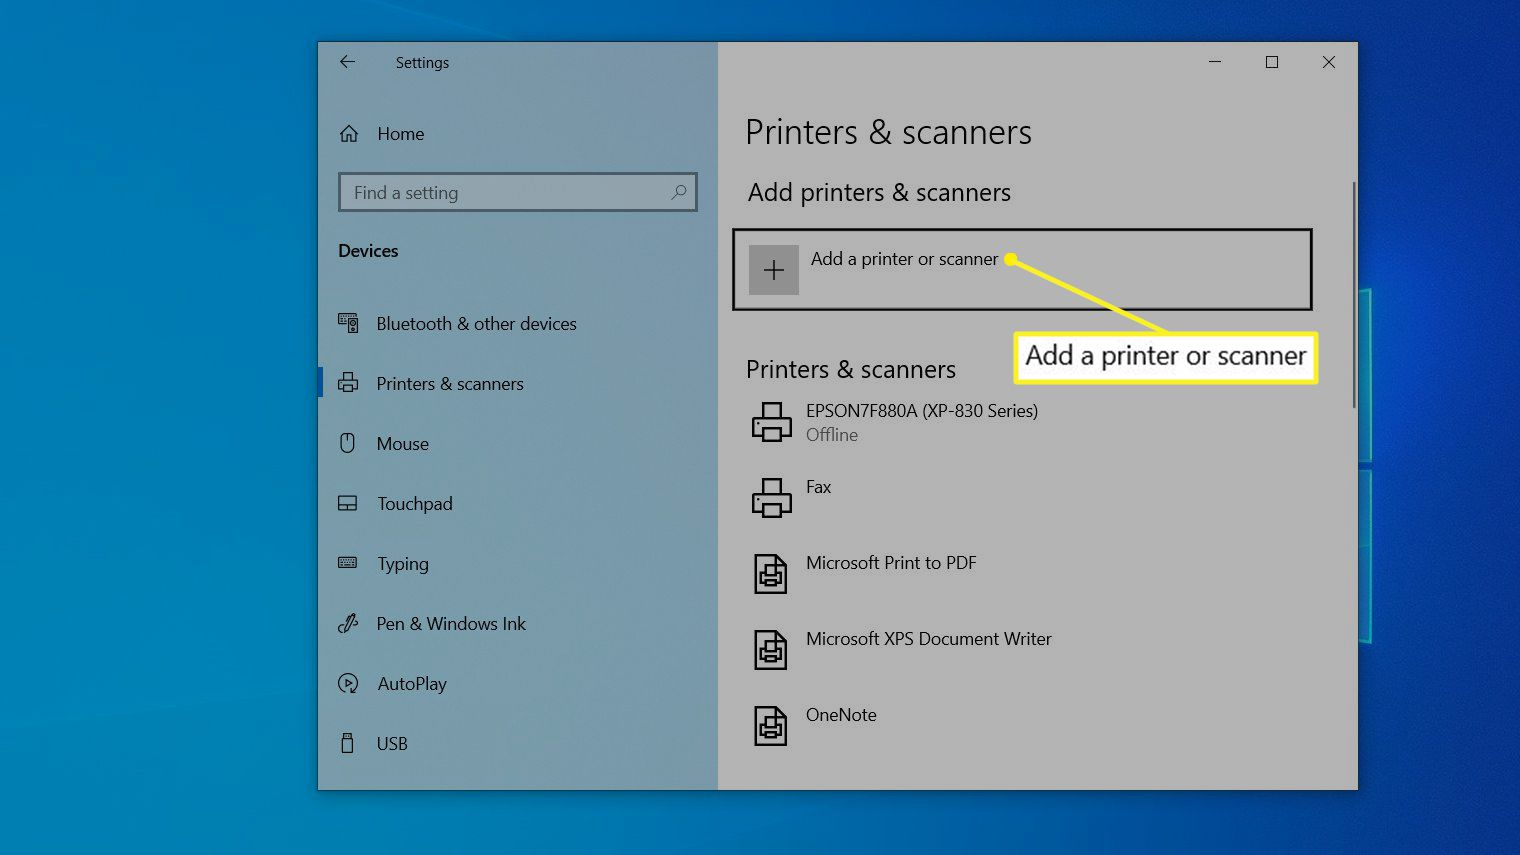 Printer & scanners screen with Add a printer or scanner highlighted